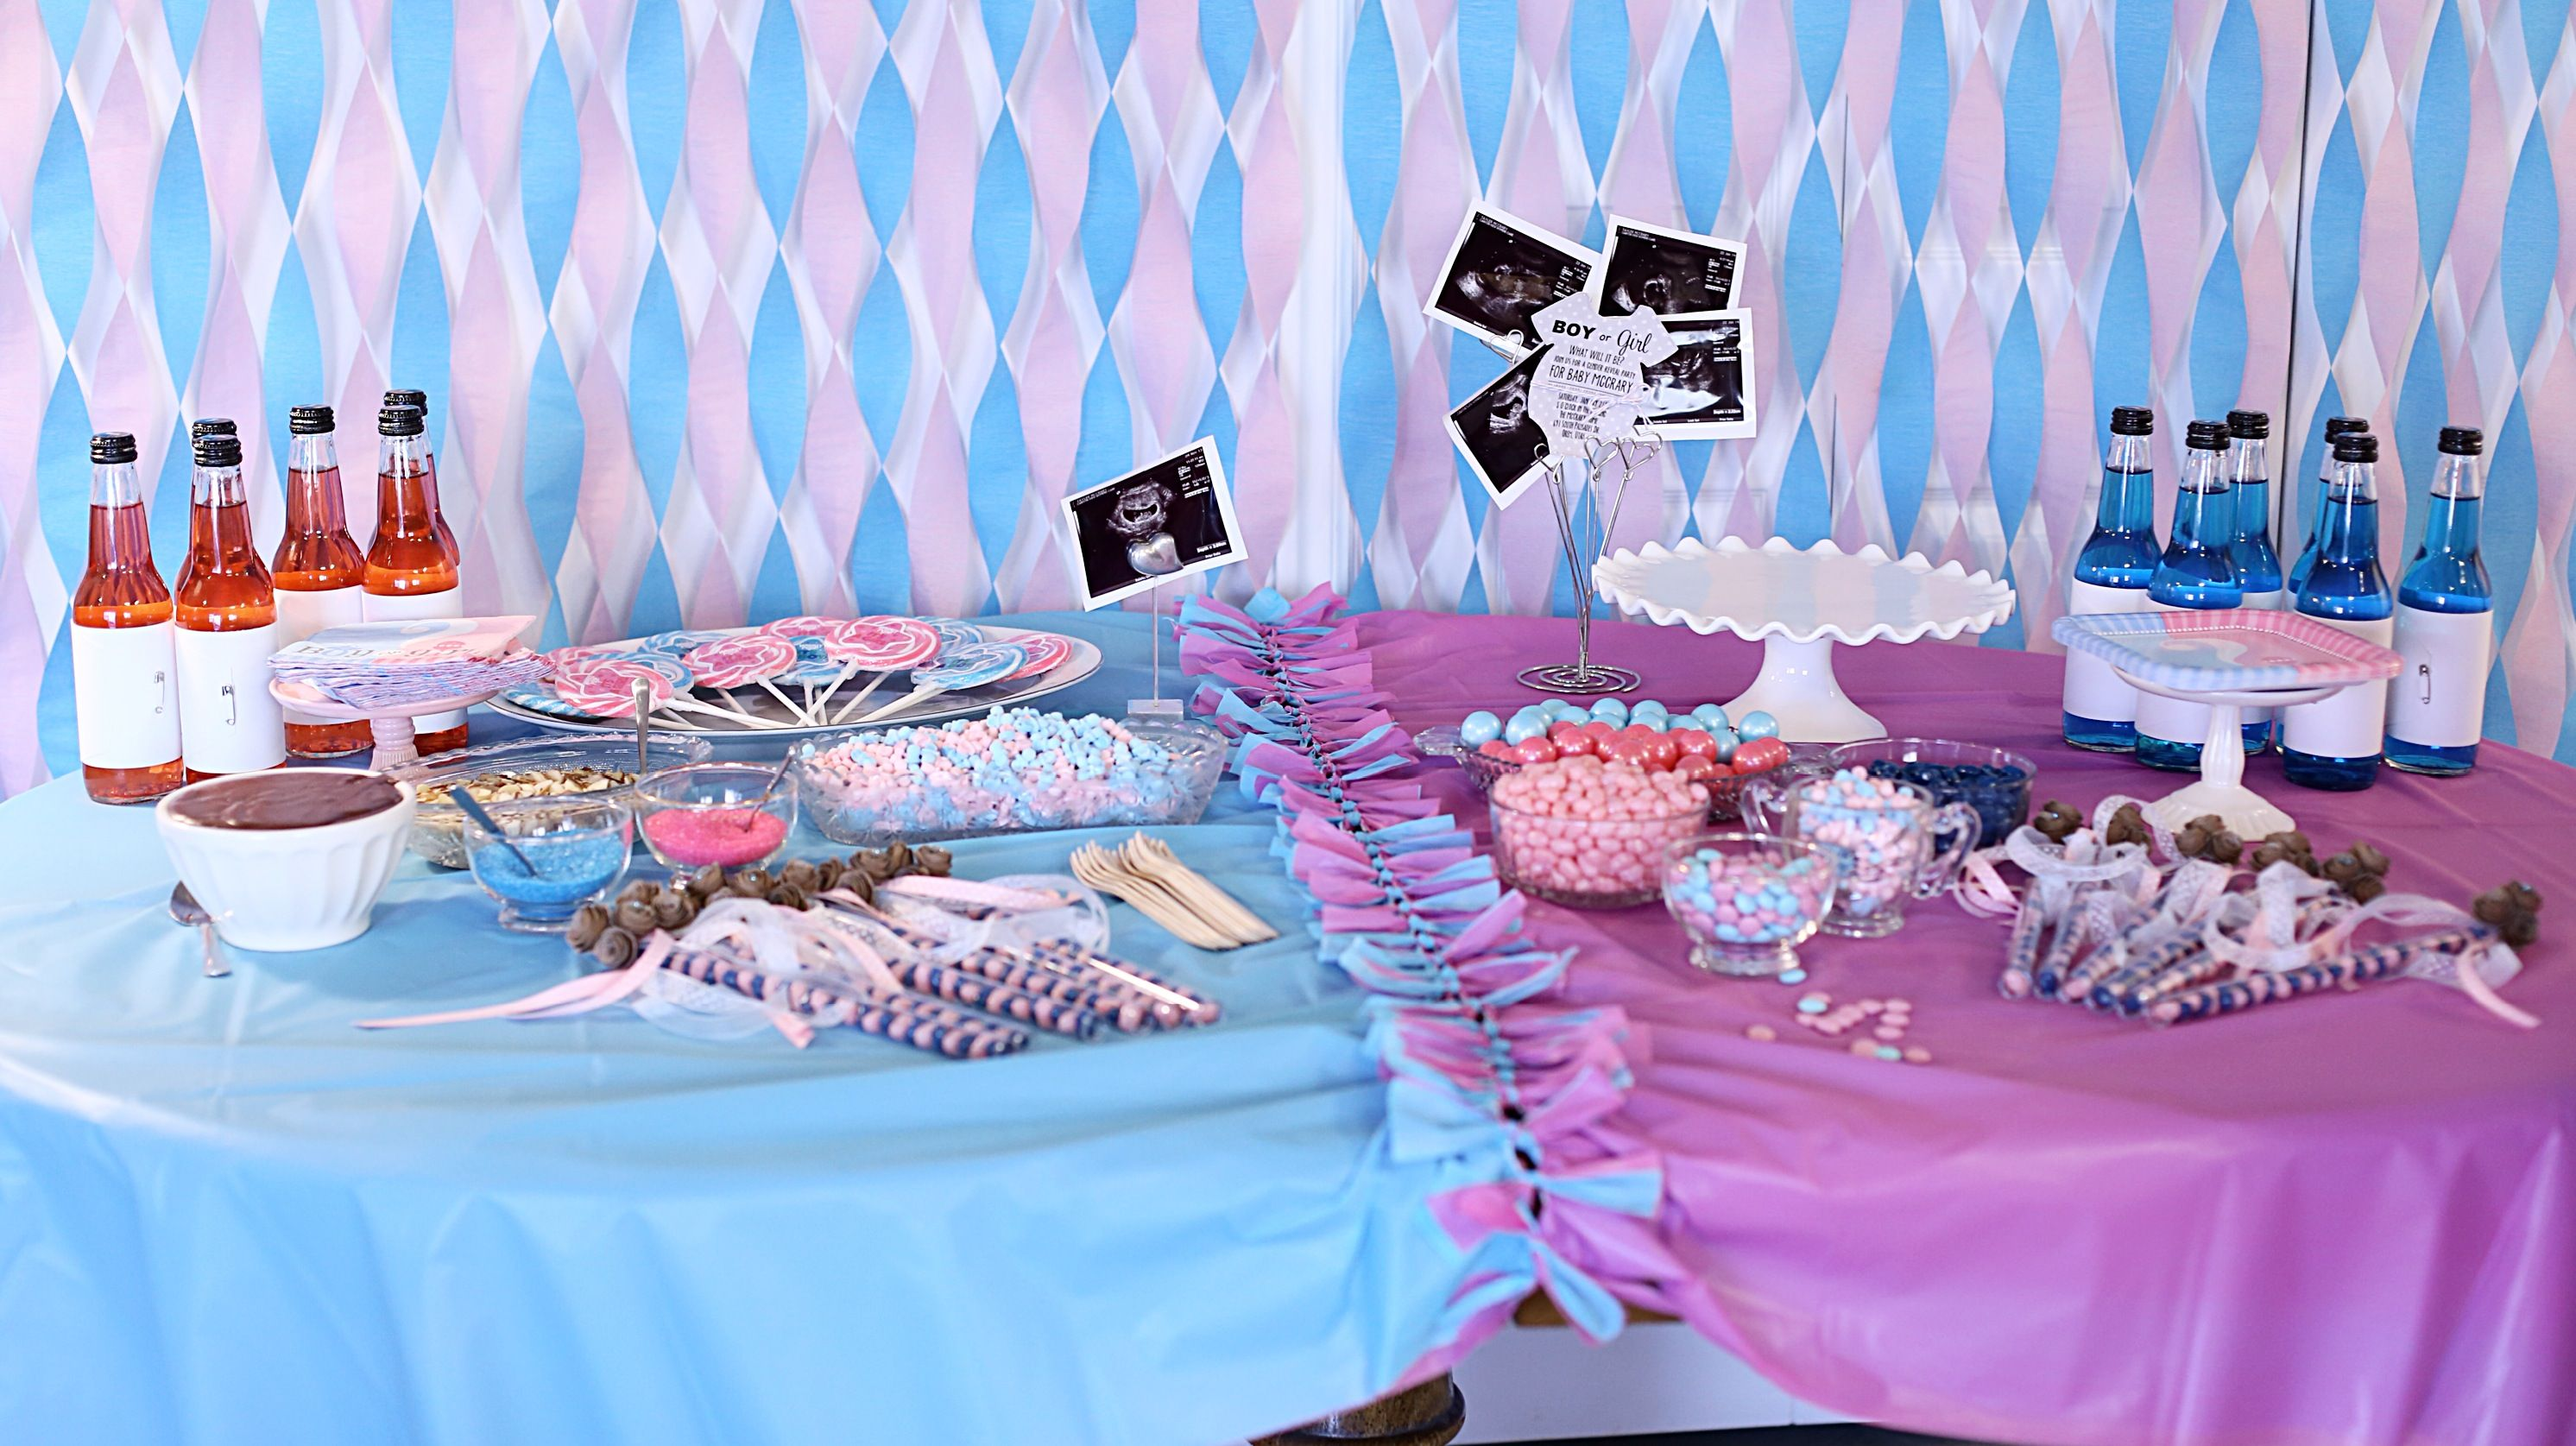 Table Decorations and treats for a Gender Reveal Party Team Pink or